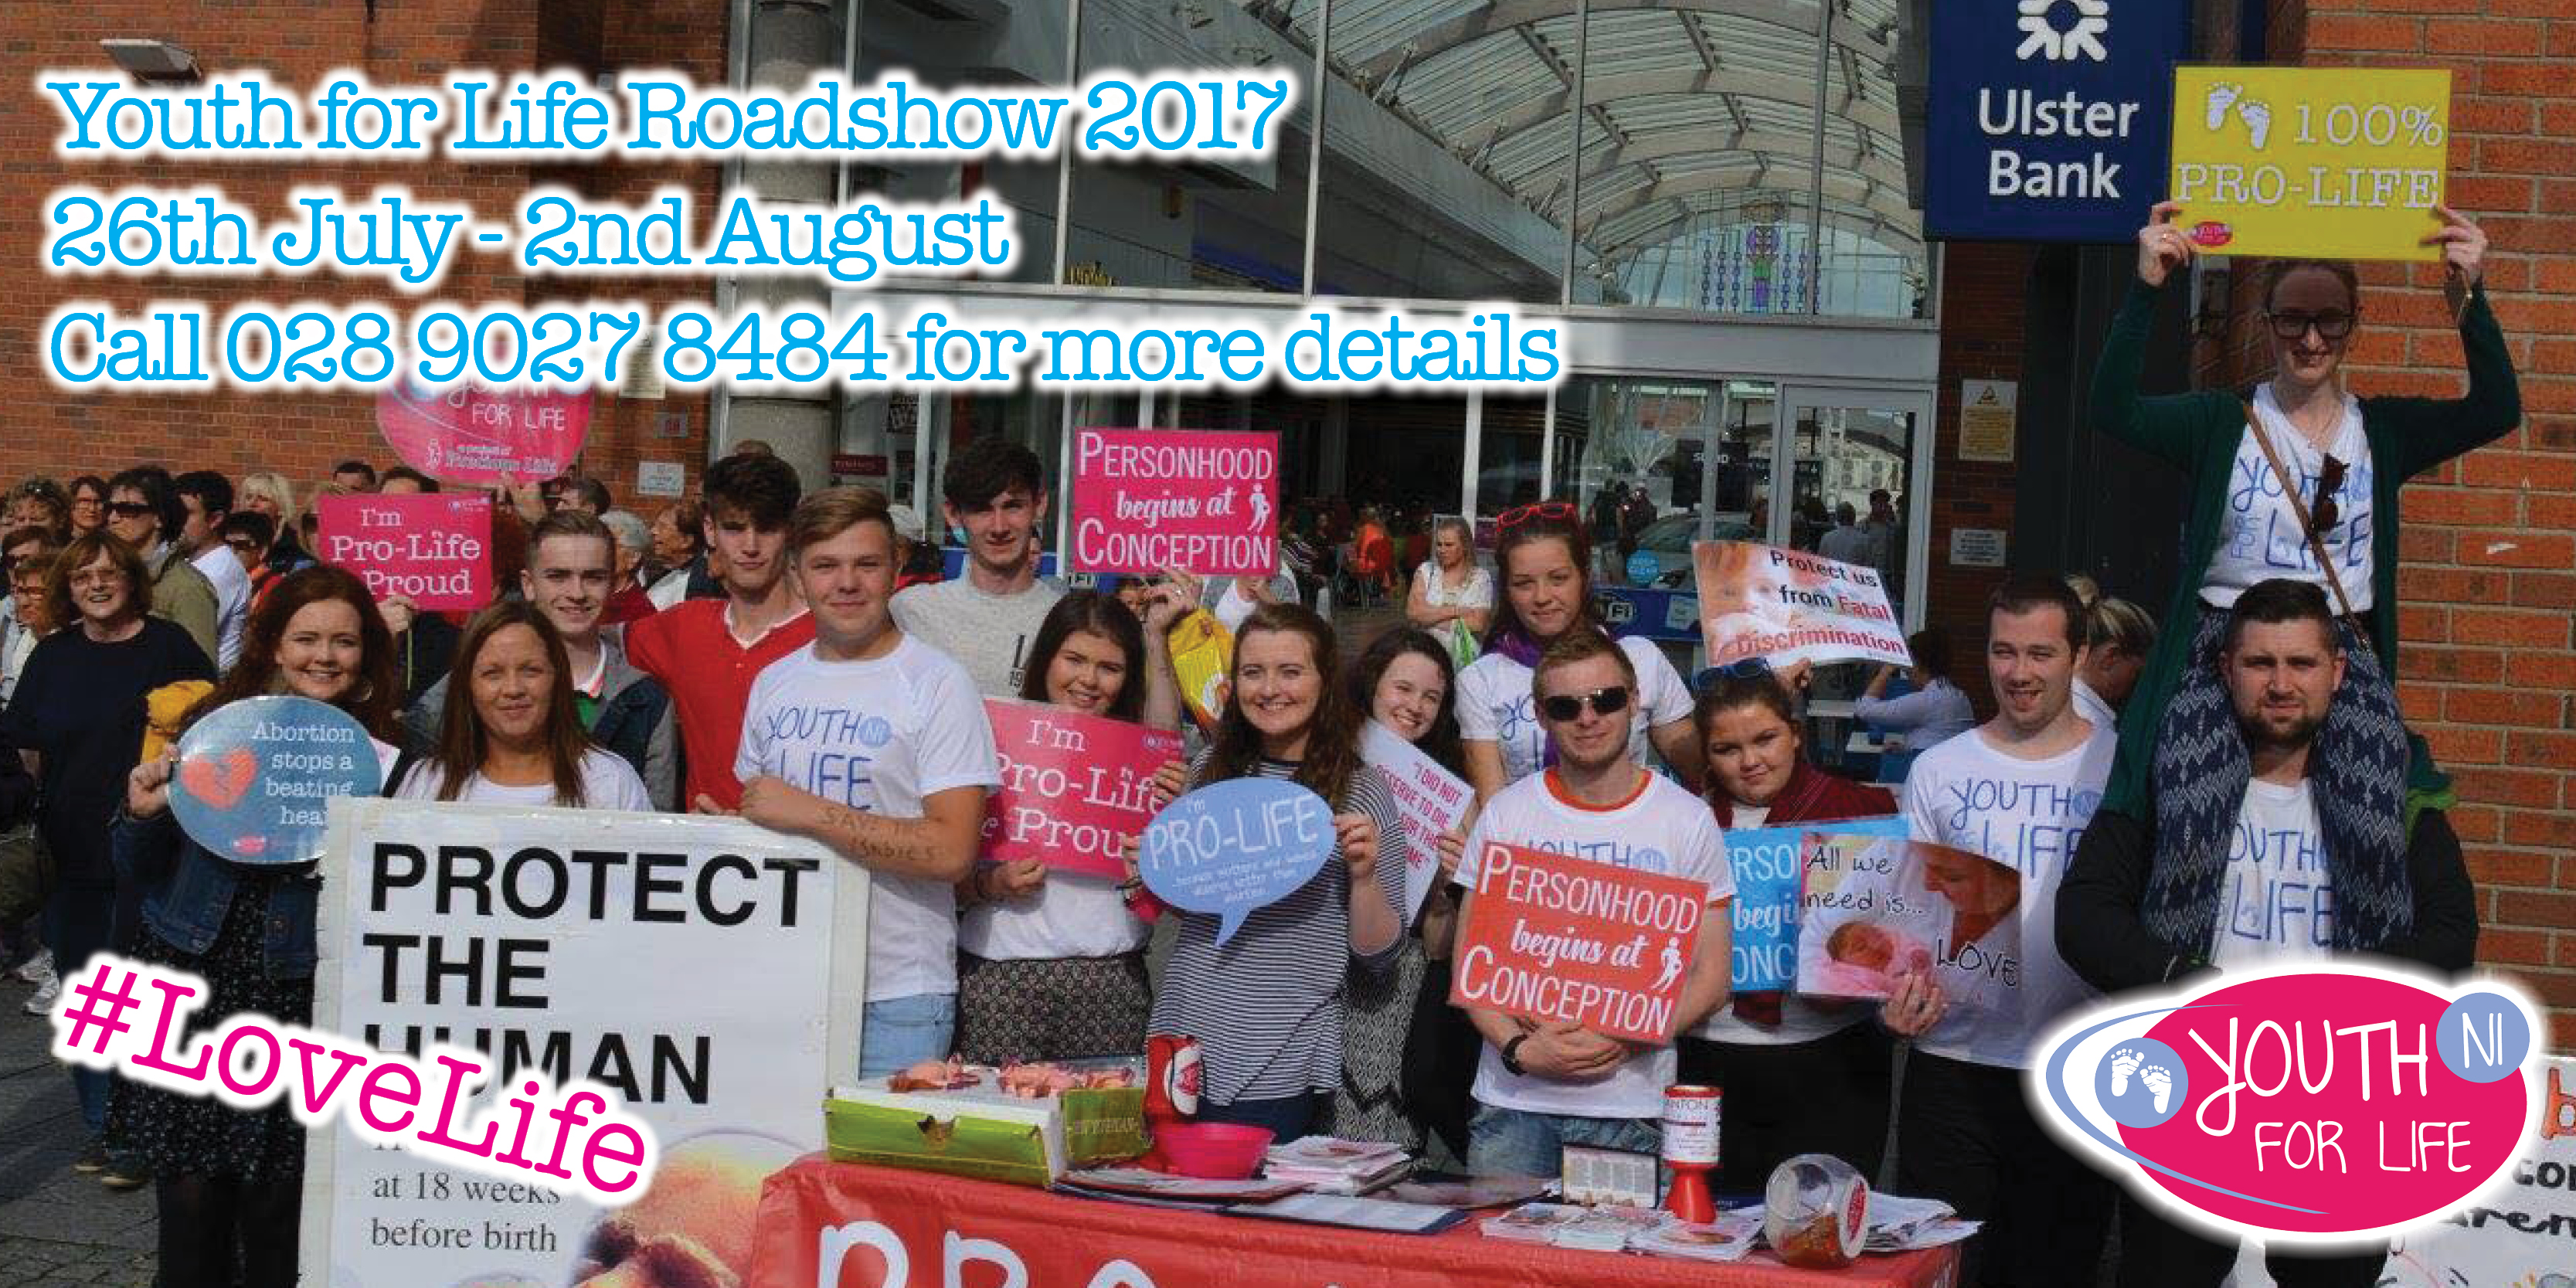 Join our #LoveLife Roadshow 2017